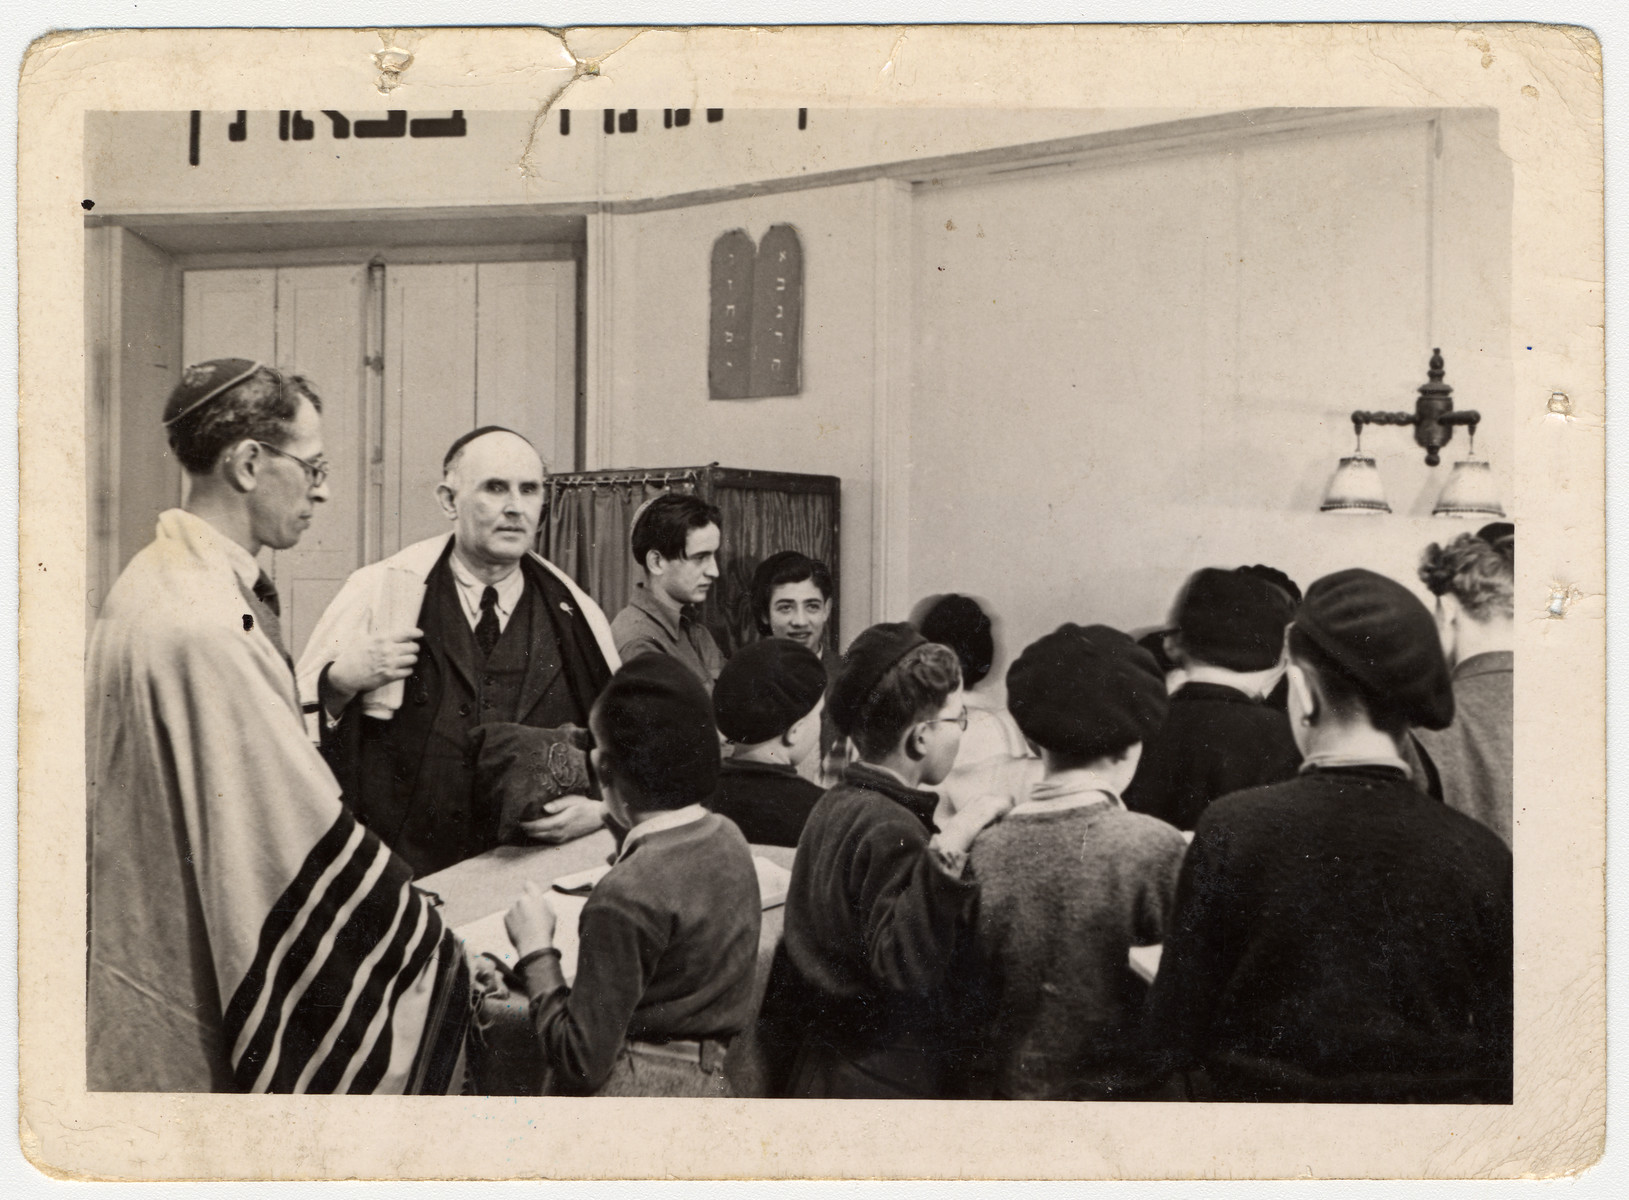 Jewish boys gather for a prayer service in a chapel in an OSE children's home.  Those pictured include Elie Wiesel (seen in profile, back right) and Jakob Rybsztajn standing next to him facing the camera.